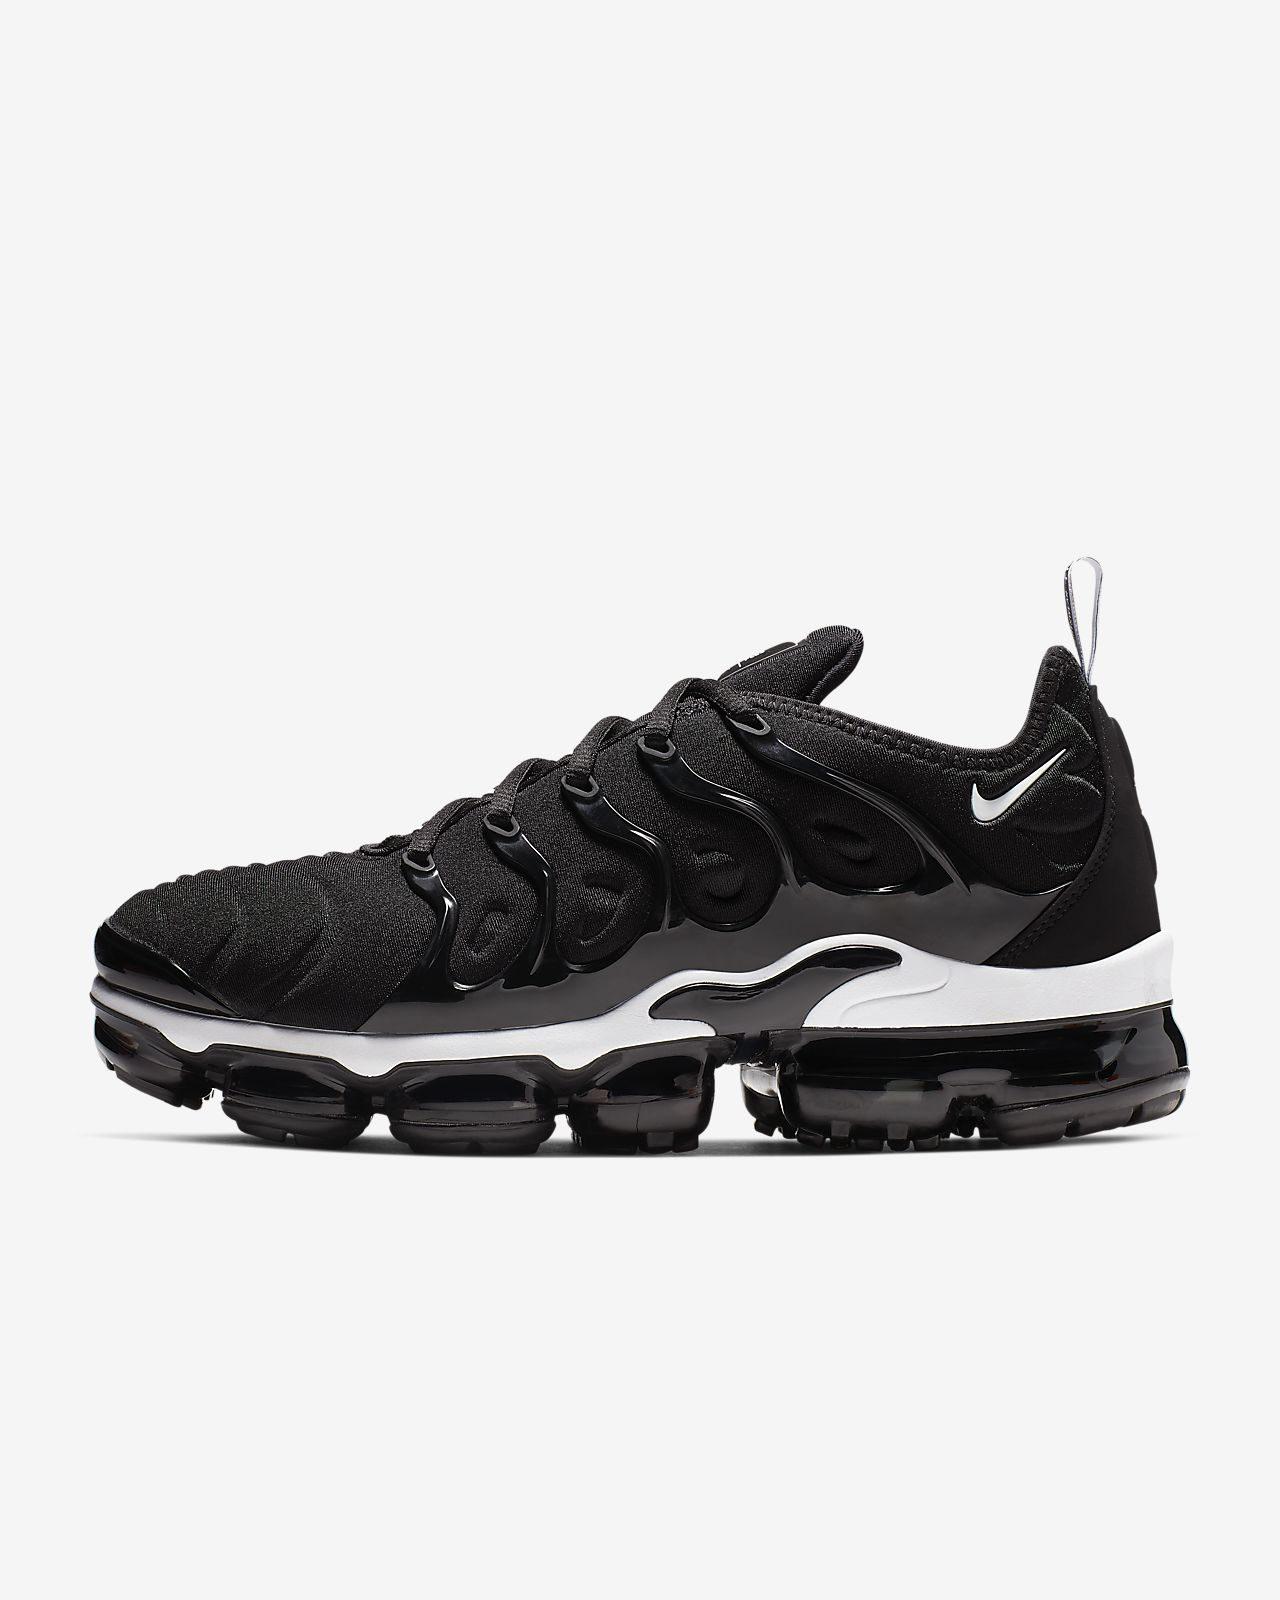 7d941c3a9994 Low Resolution Nike Air VaporMax Plus Men s Shoe Nike Air VaporMax Plus  Men s Shoe